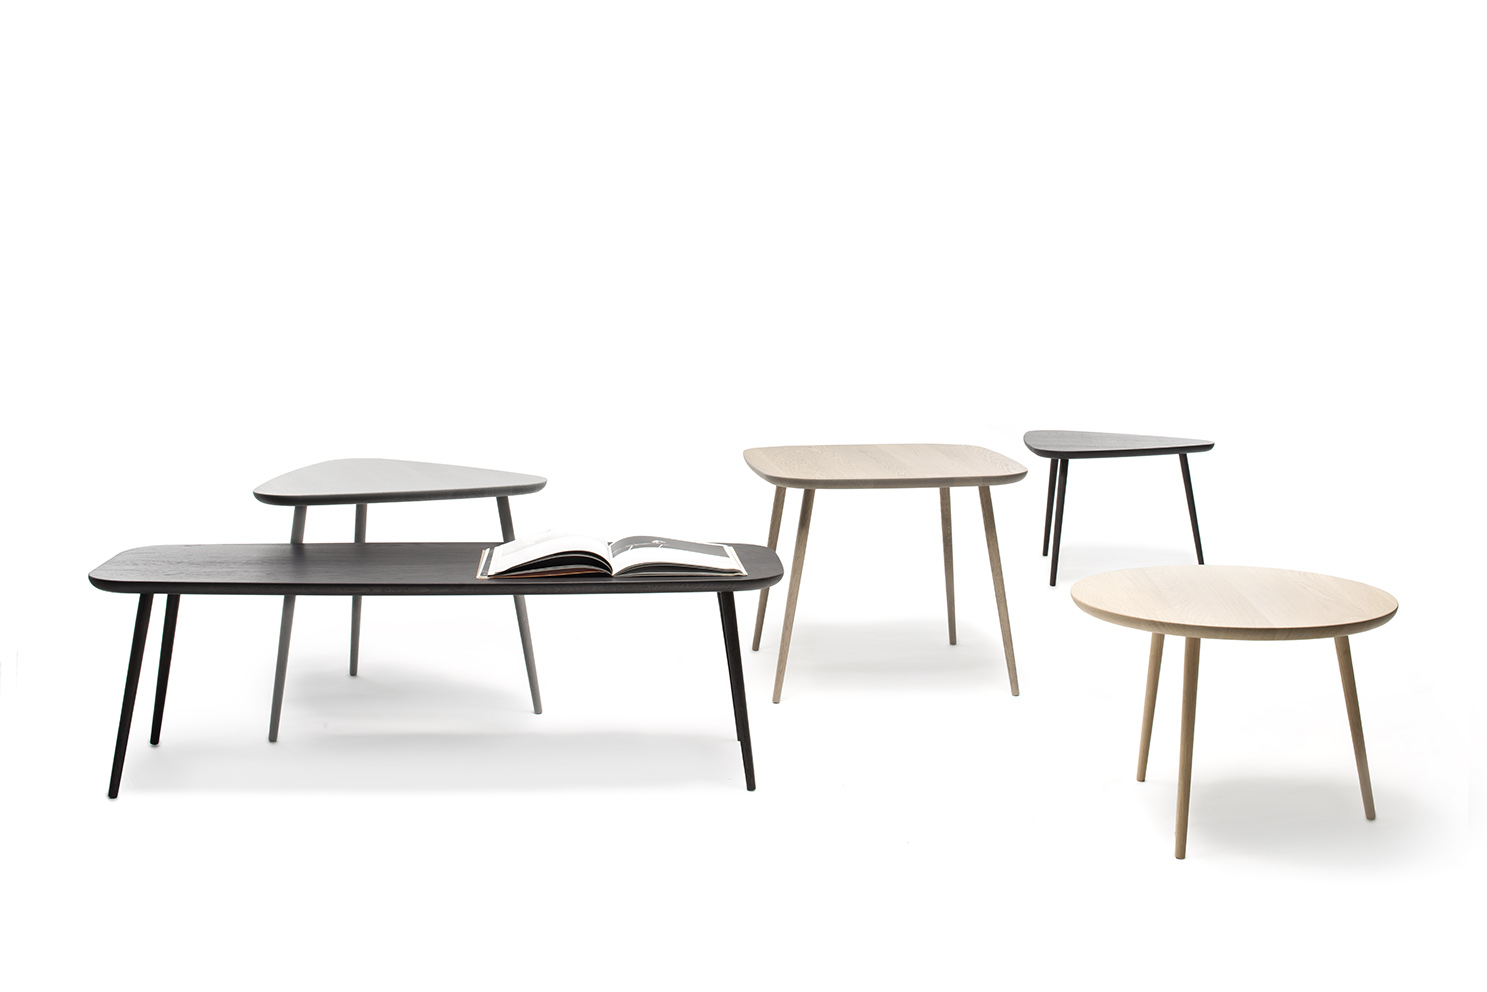 Sudbrock MELLINI coffee tables, side tables